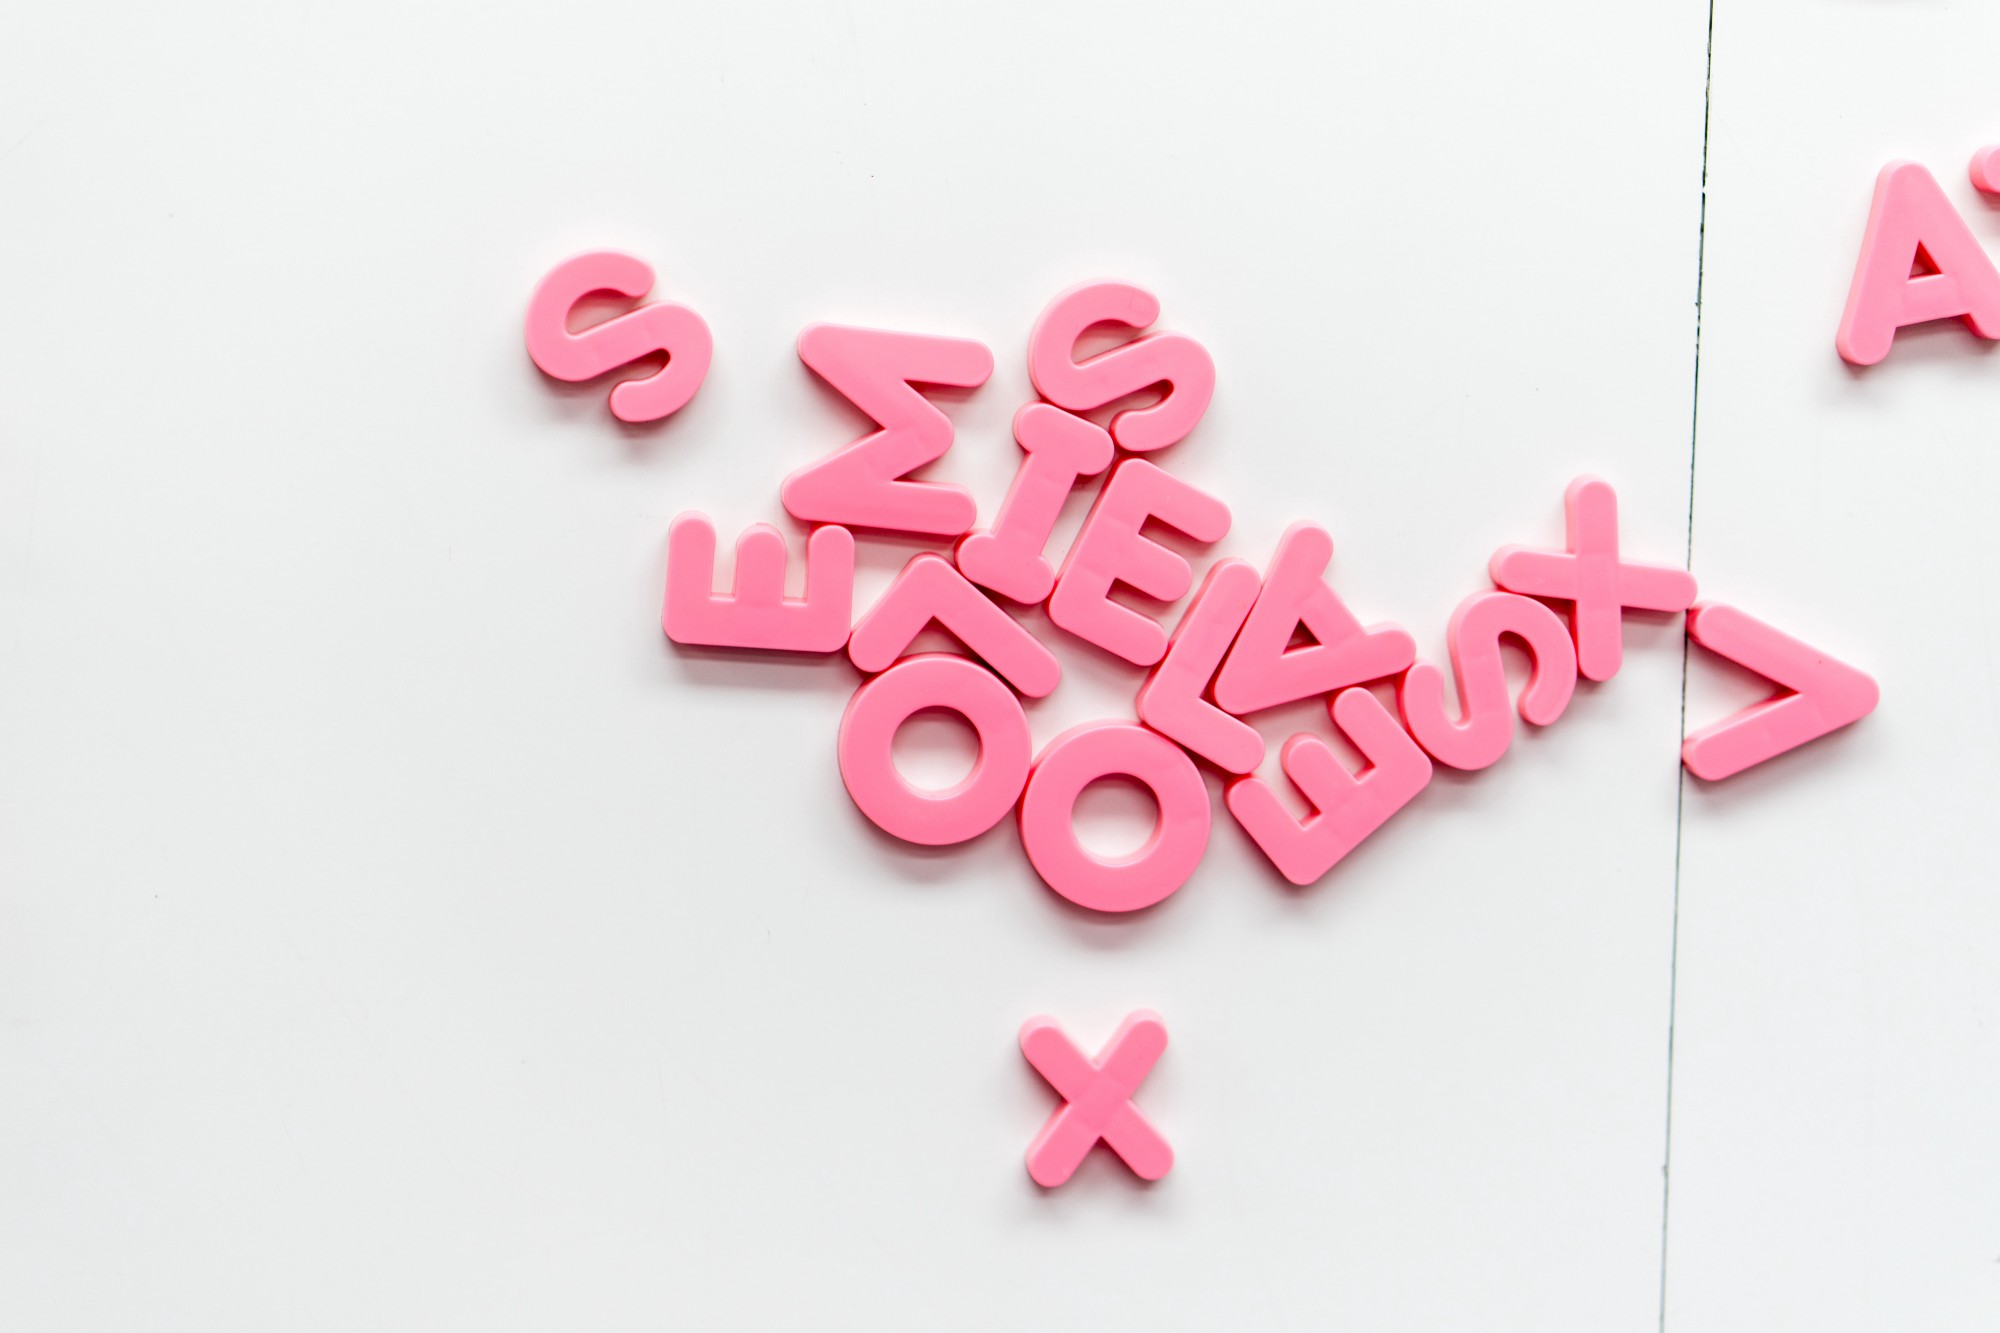 3D letters of Latin alphabet in pink are on a white background